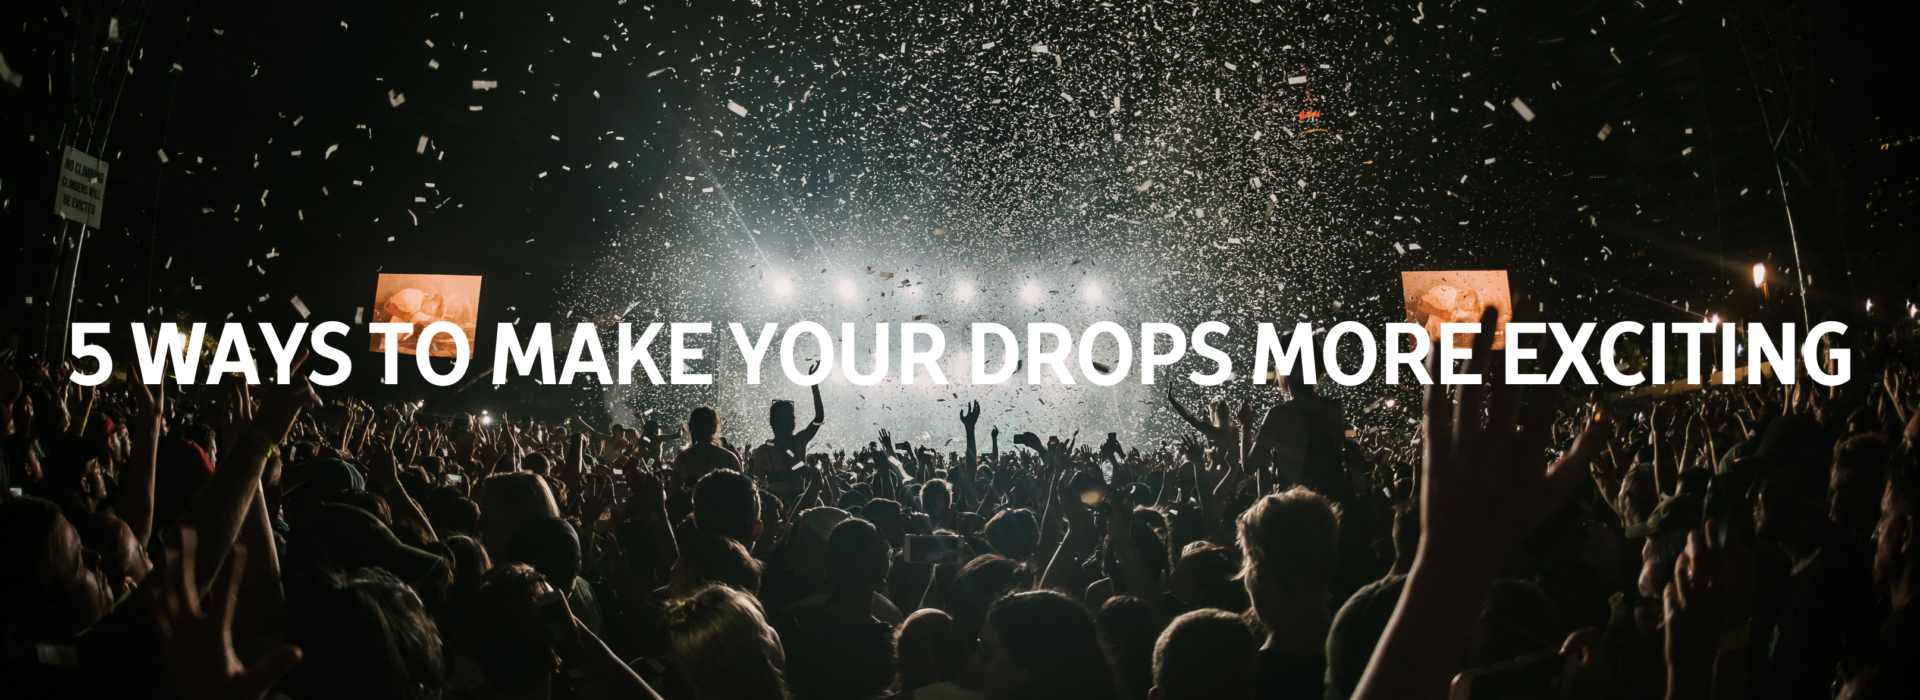 5 Ways to Make Your Drops More Exciting